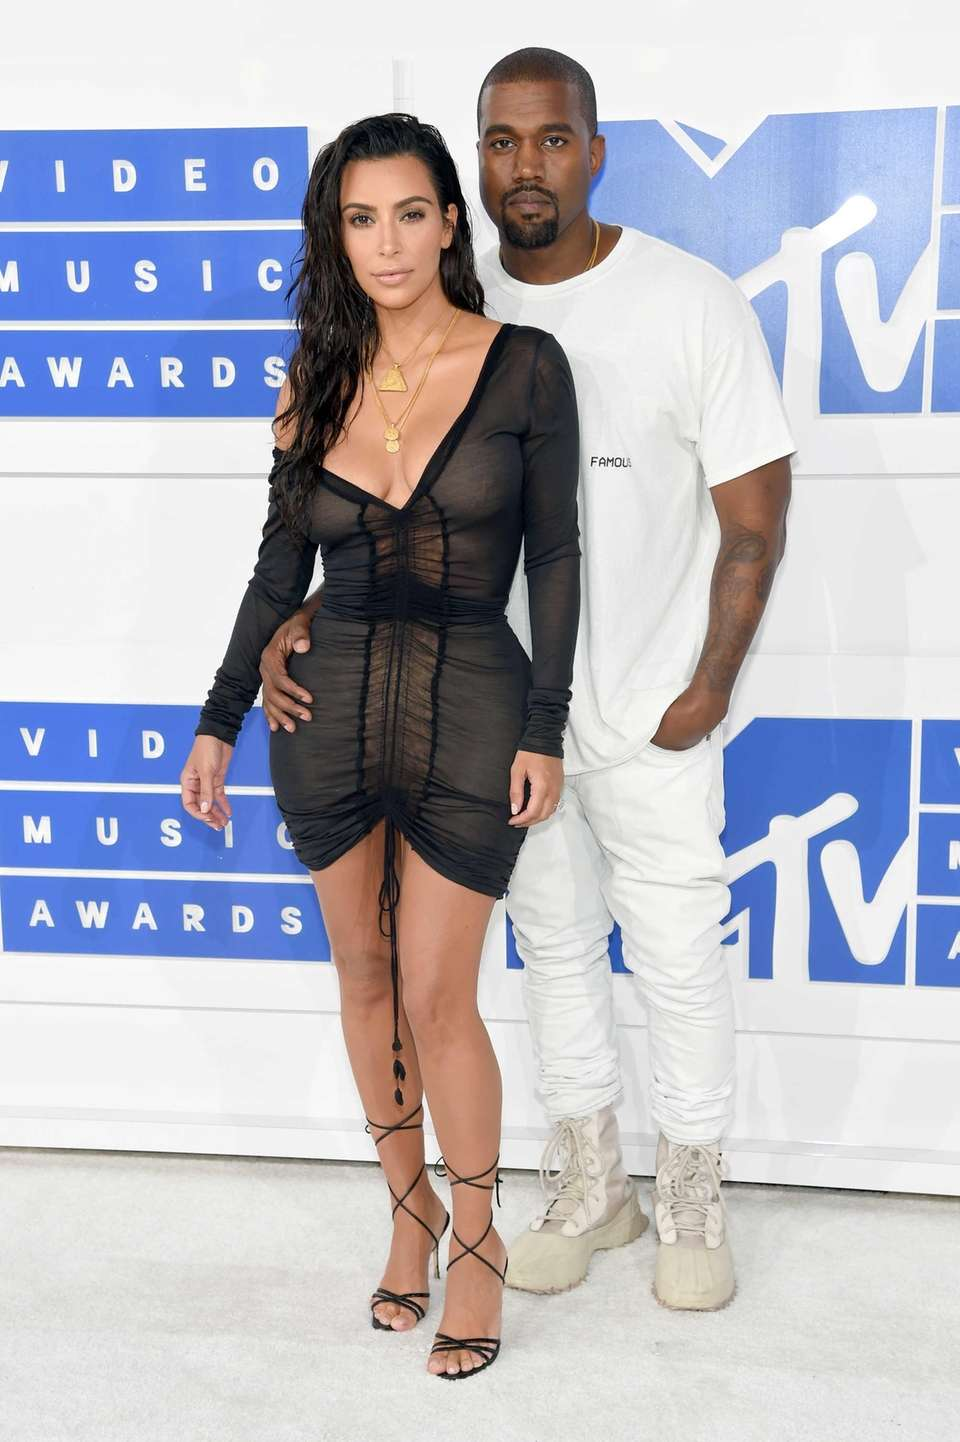 Kim Kardashian and Kanye West attend the 2016